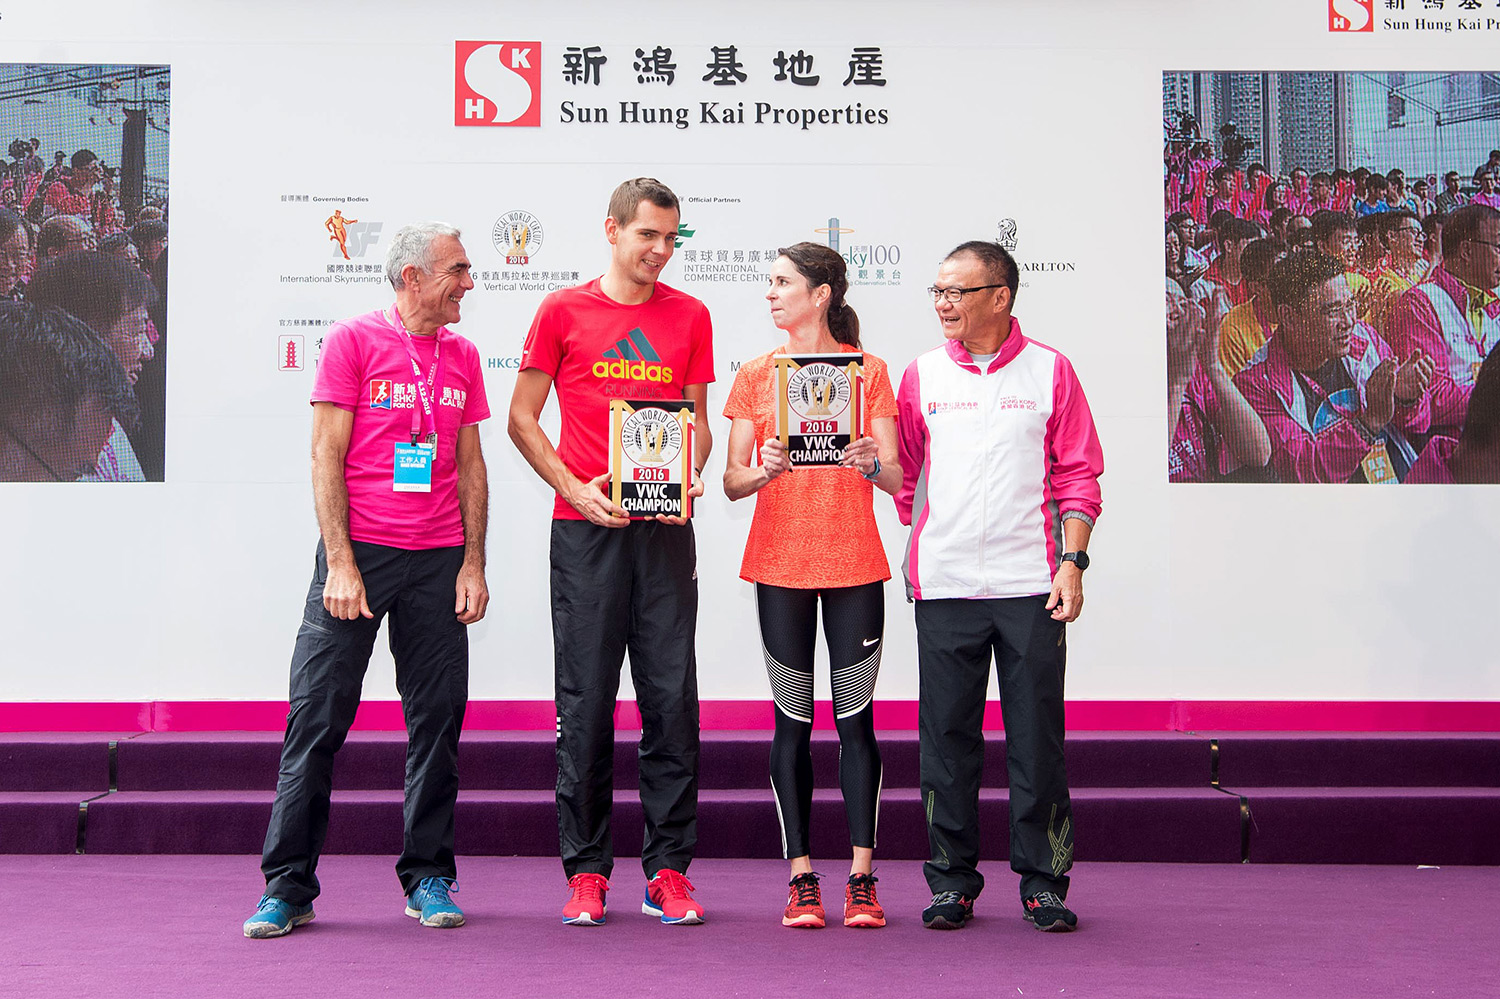 2016 VWC Champions Piotr Lobodzinski and Suzy Walsham, flanked by Marino Giacometti, ISF President and Mike Wong, SHKP Deputy Managing Director. ©Takumi Images